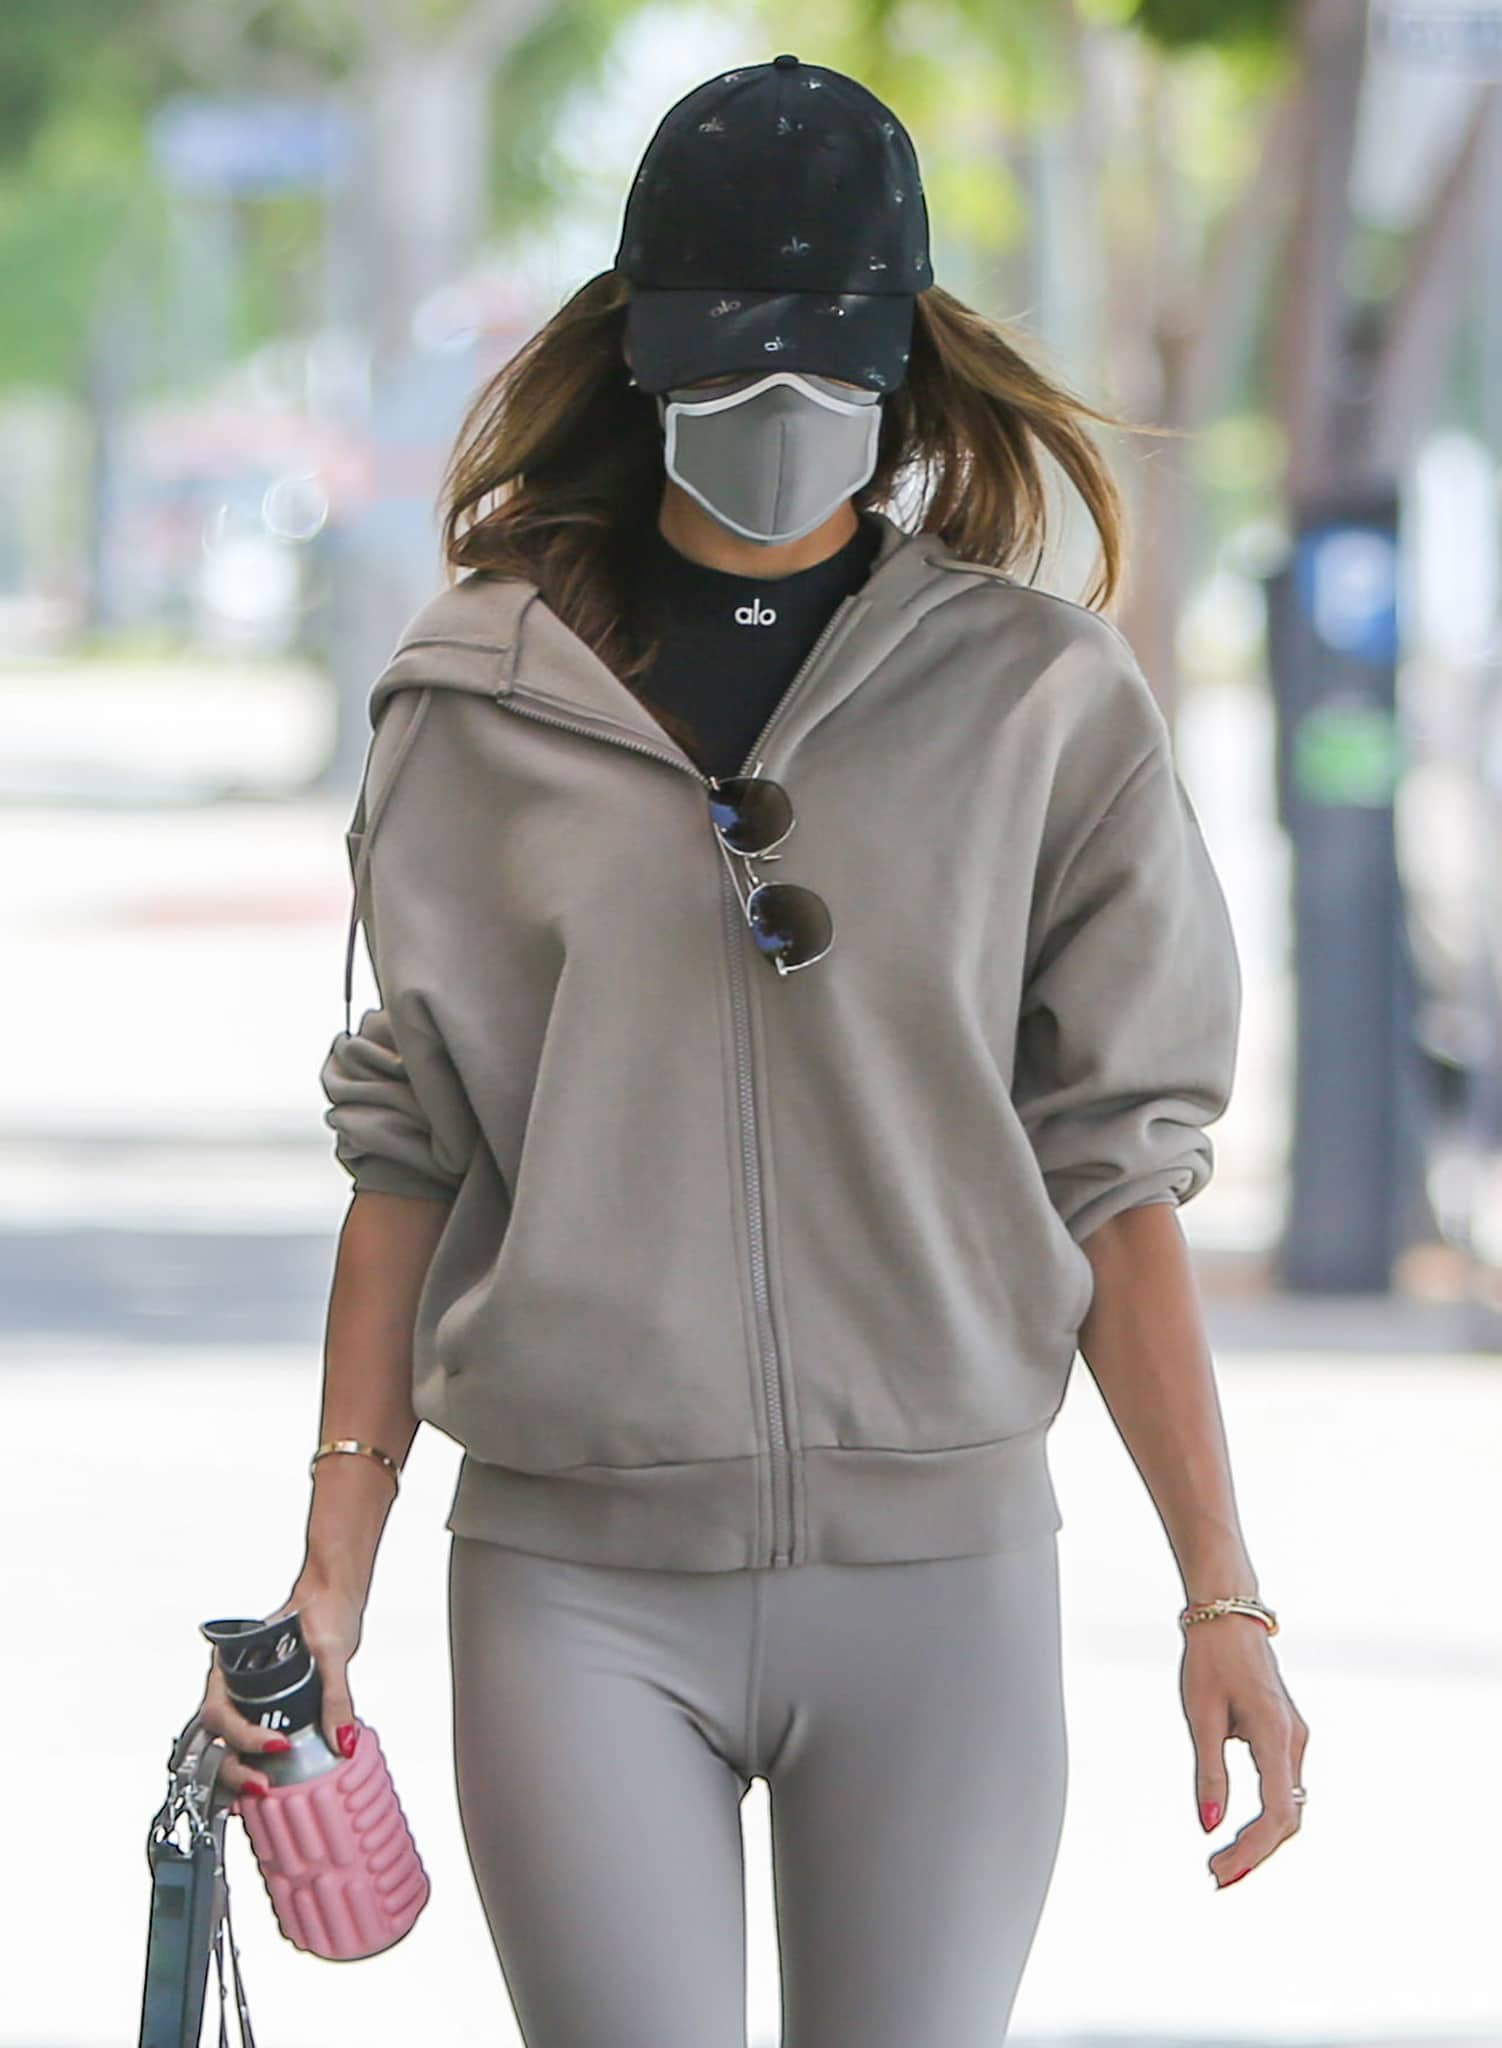 Alessandra Ambrosio styles her workout outfit with Alo Yoga cap, a hoodie, and a face mask